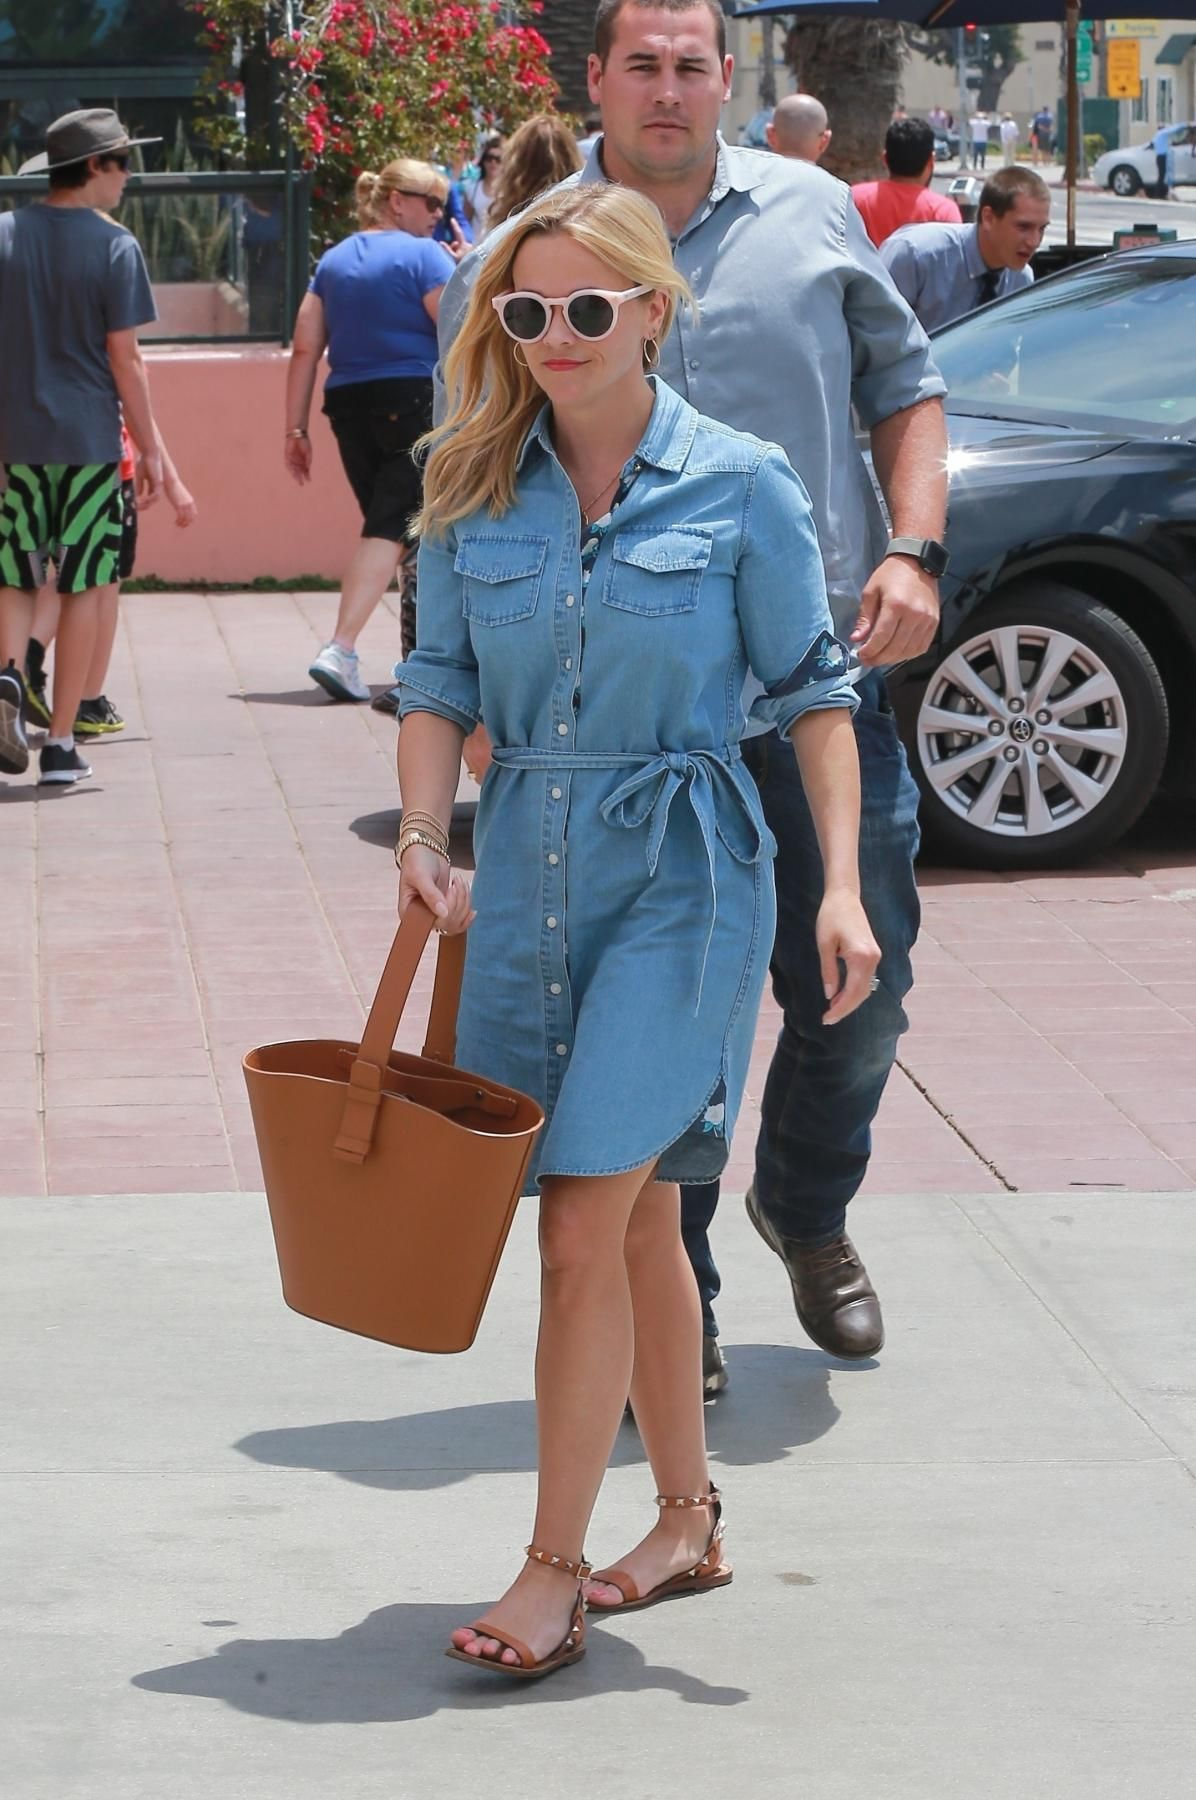 Reese Witherspoon Goes Out In A Belted Denim Shirtdress By Draper